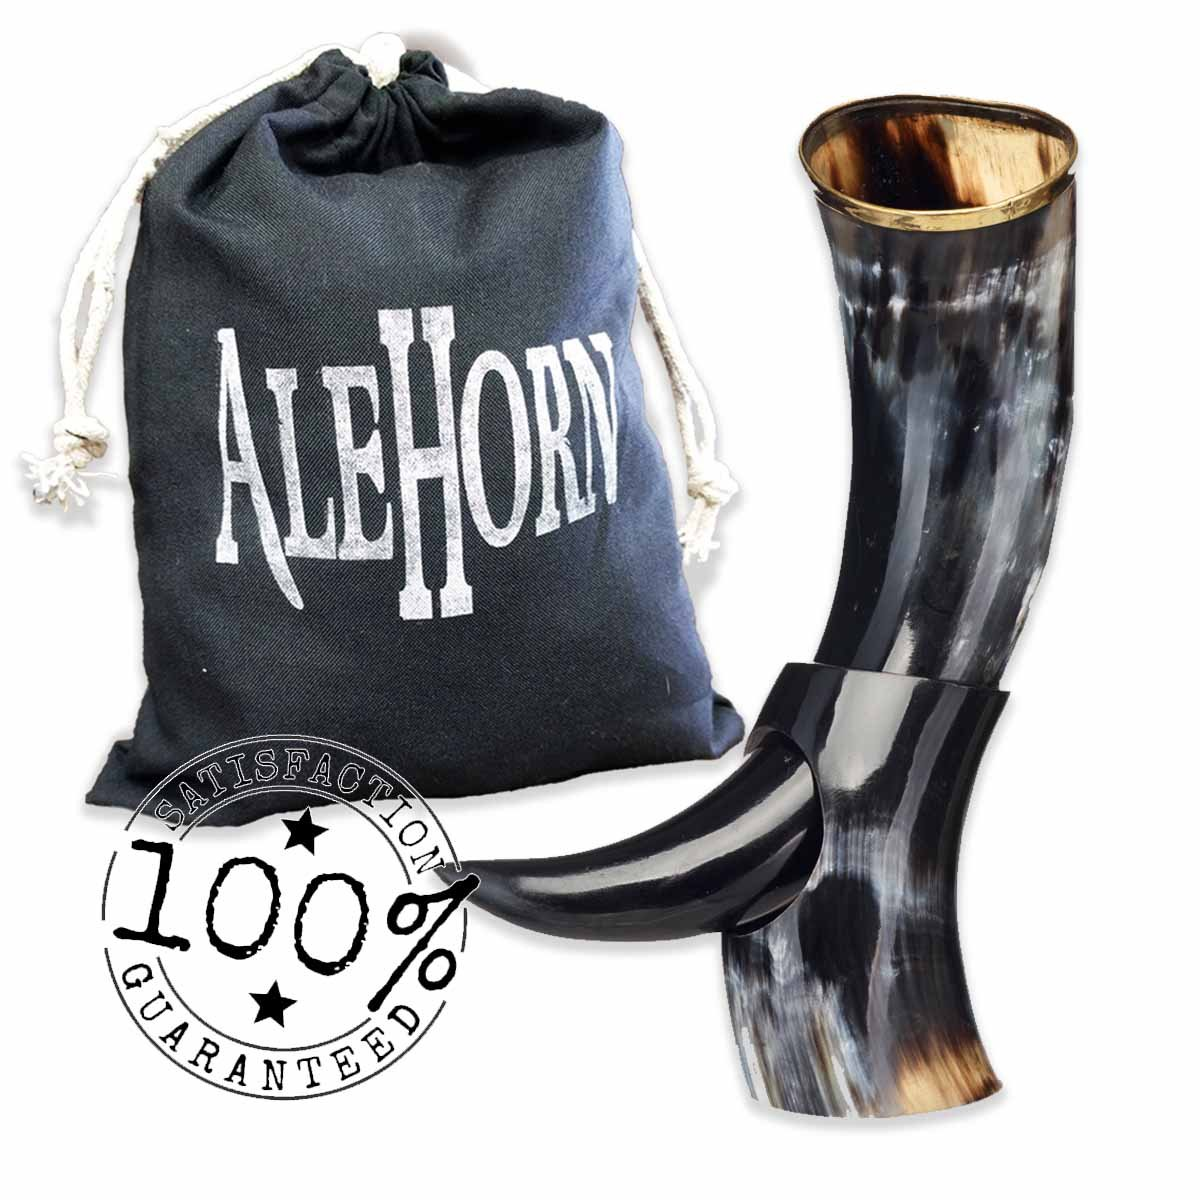 Alehorn - Genuine Drinking Horn - Polished Finish - Medieval Viking Norse Beer Mug - Game of Thrones Cup Goblet for Beer, Mead, Ale - Waterproof Interior - Curved Style (12'', Polished Horn) by AleHorn